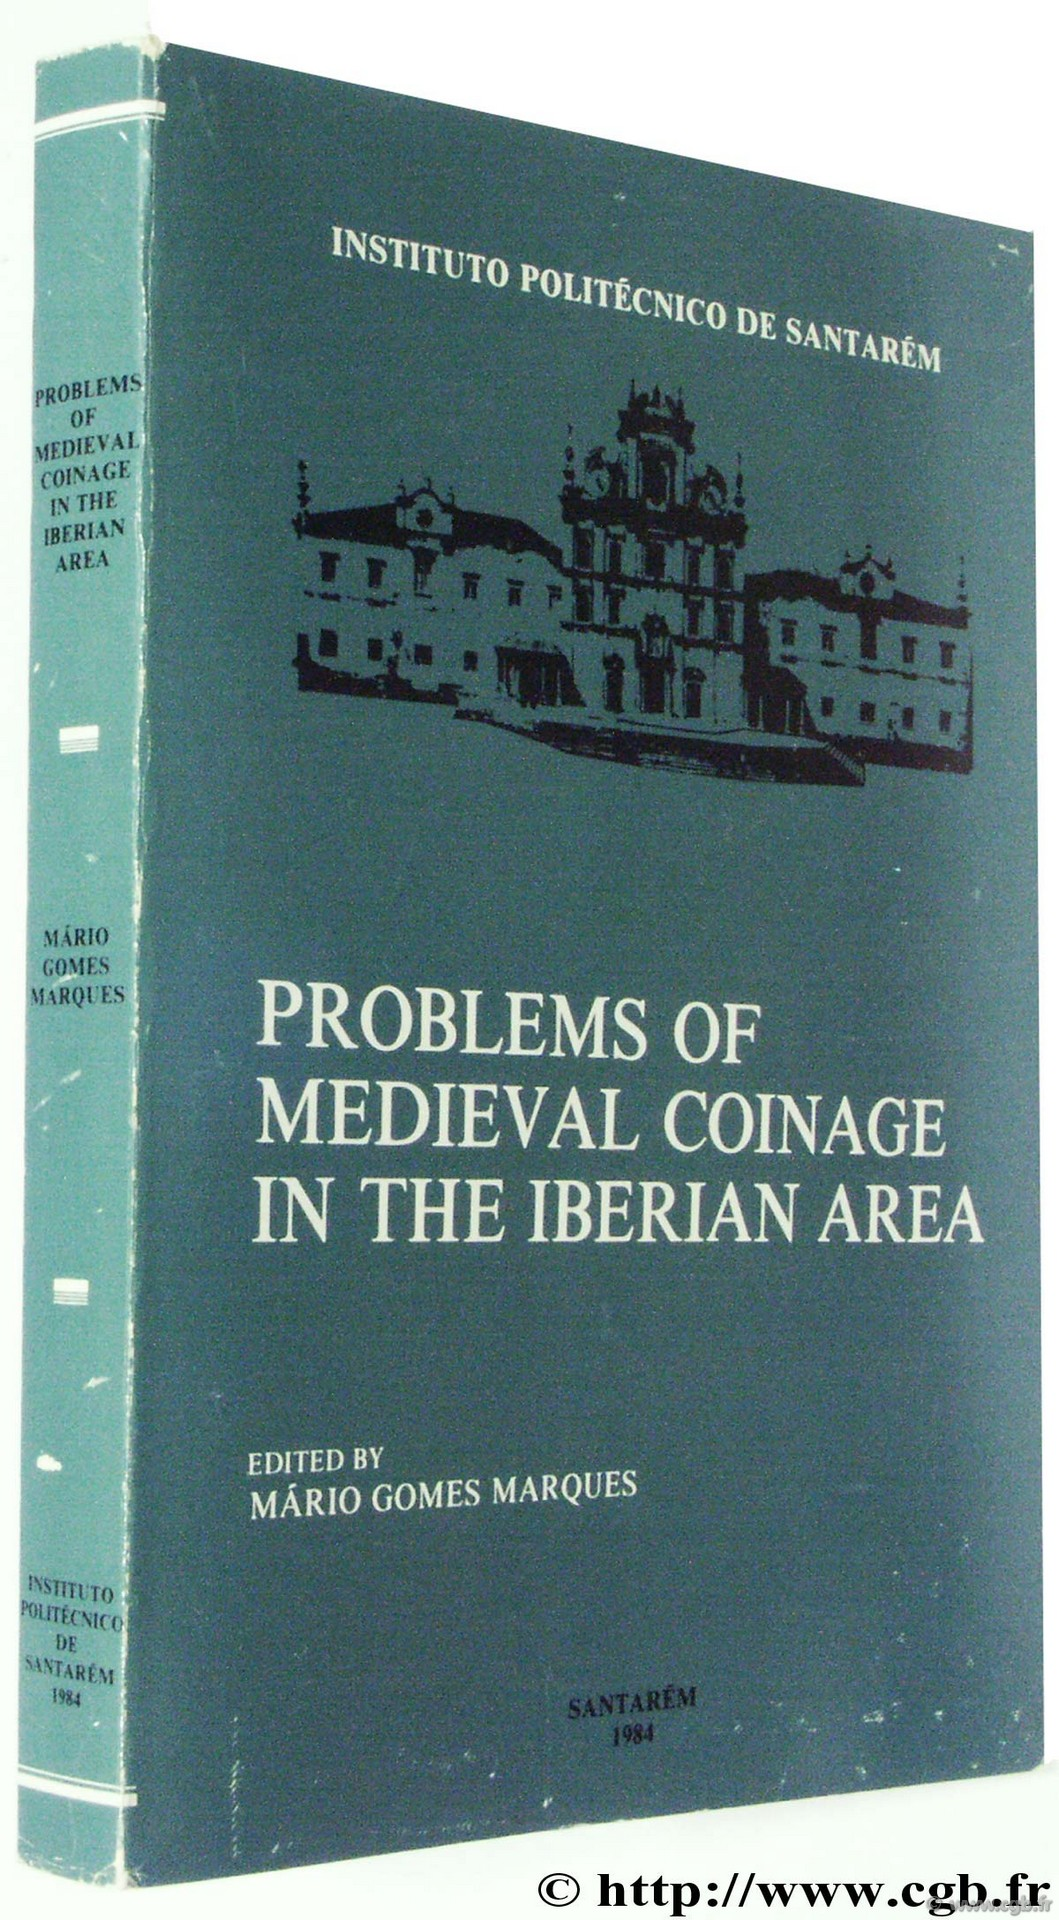 Problems of Medieval Coinage in the Iberian Area GOMES MARQUES M.